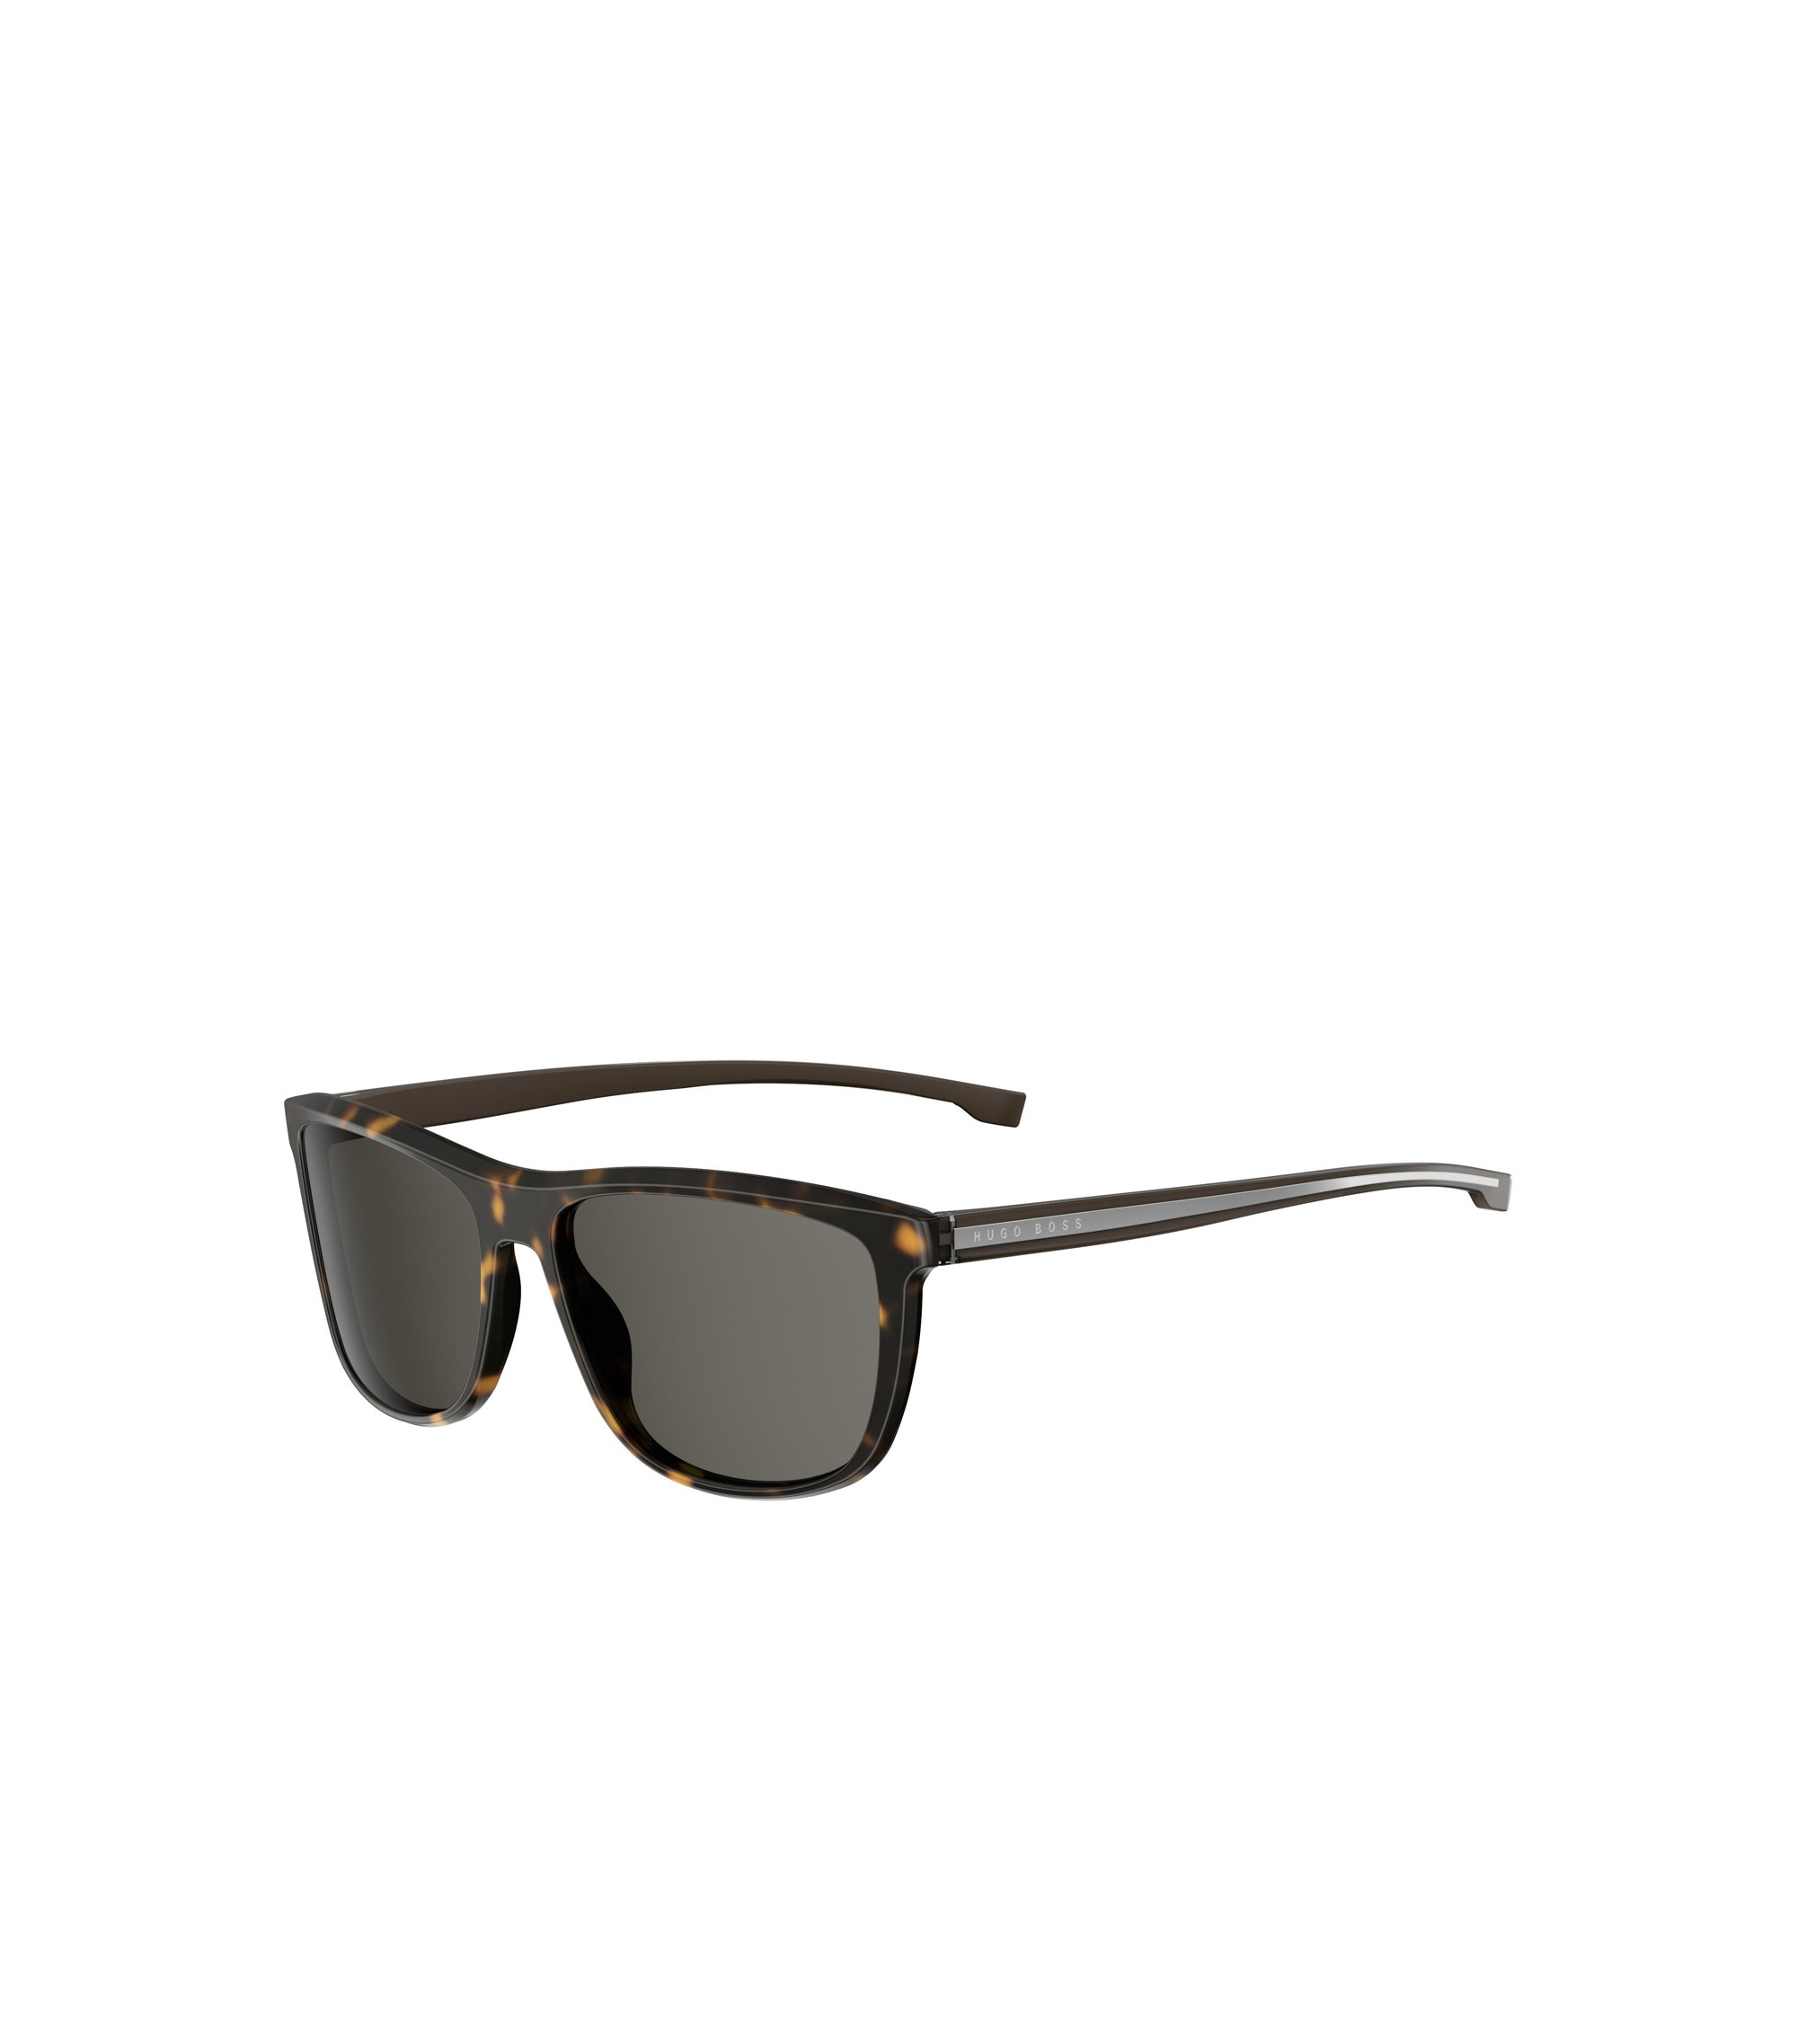 Black Lens Top Bar Sunglasses | BOSS 0874S, Assorted-Pre-Pack